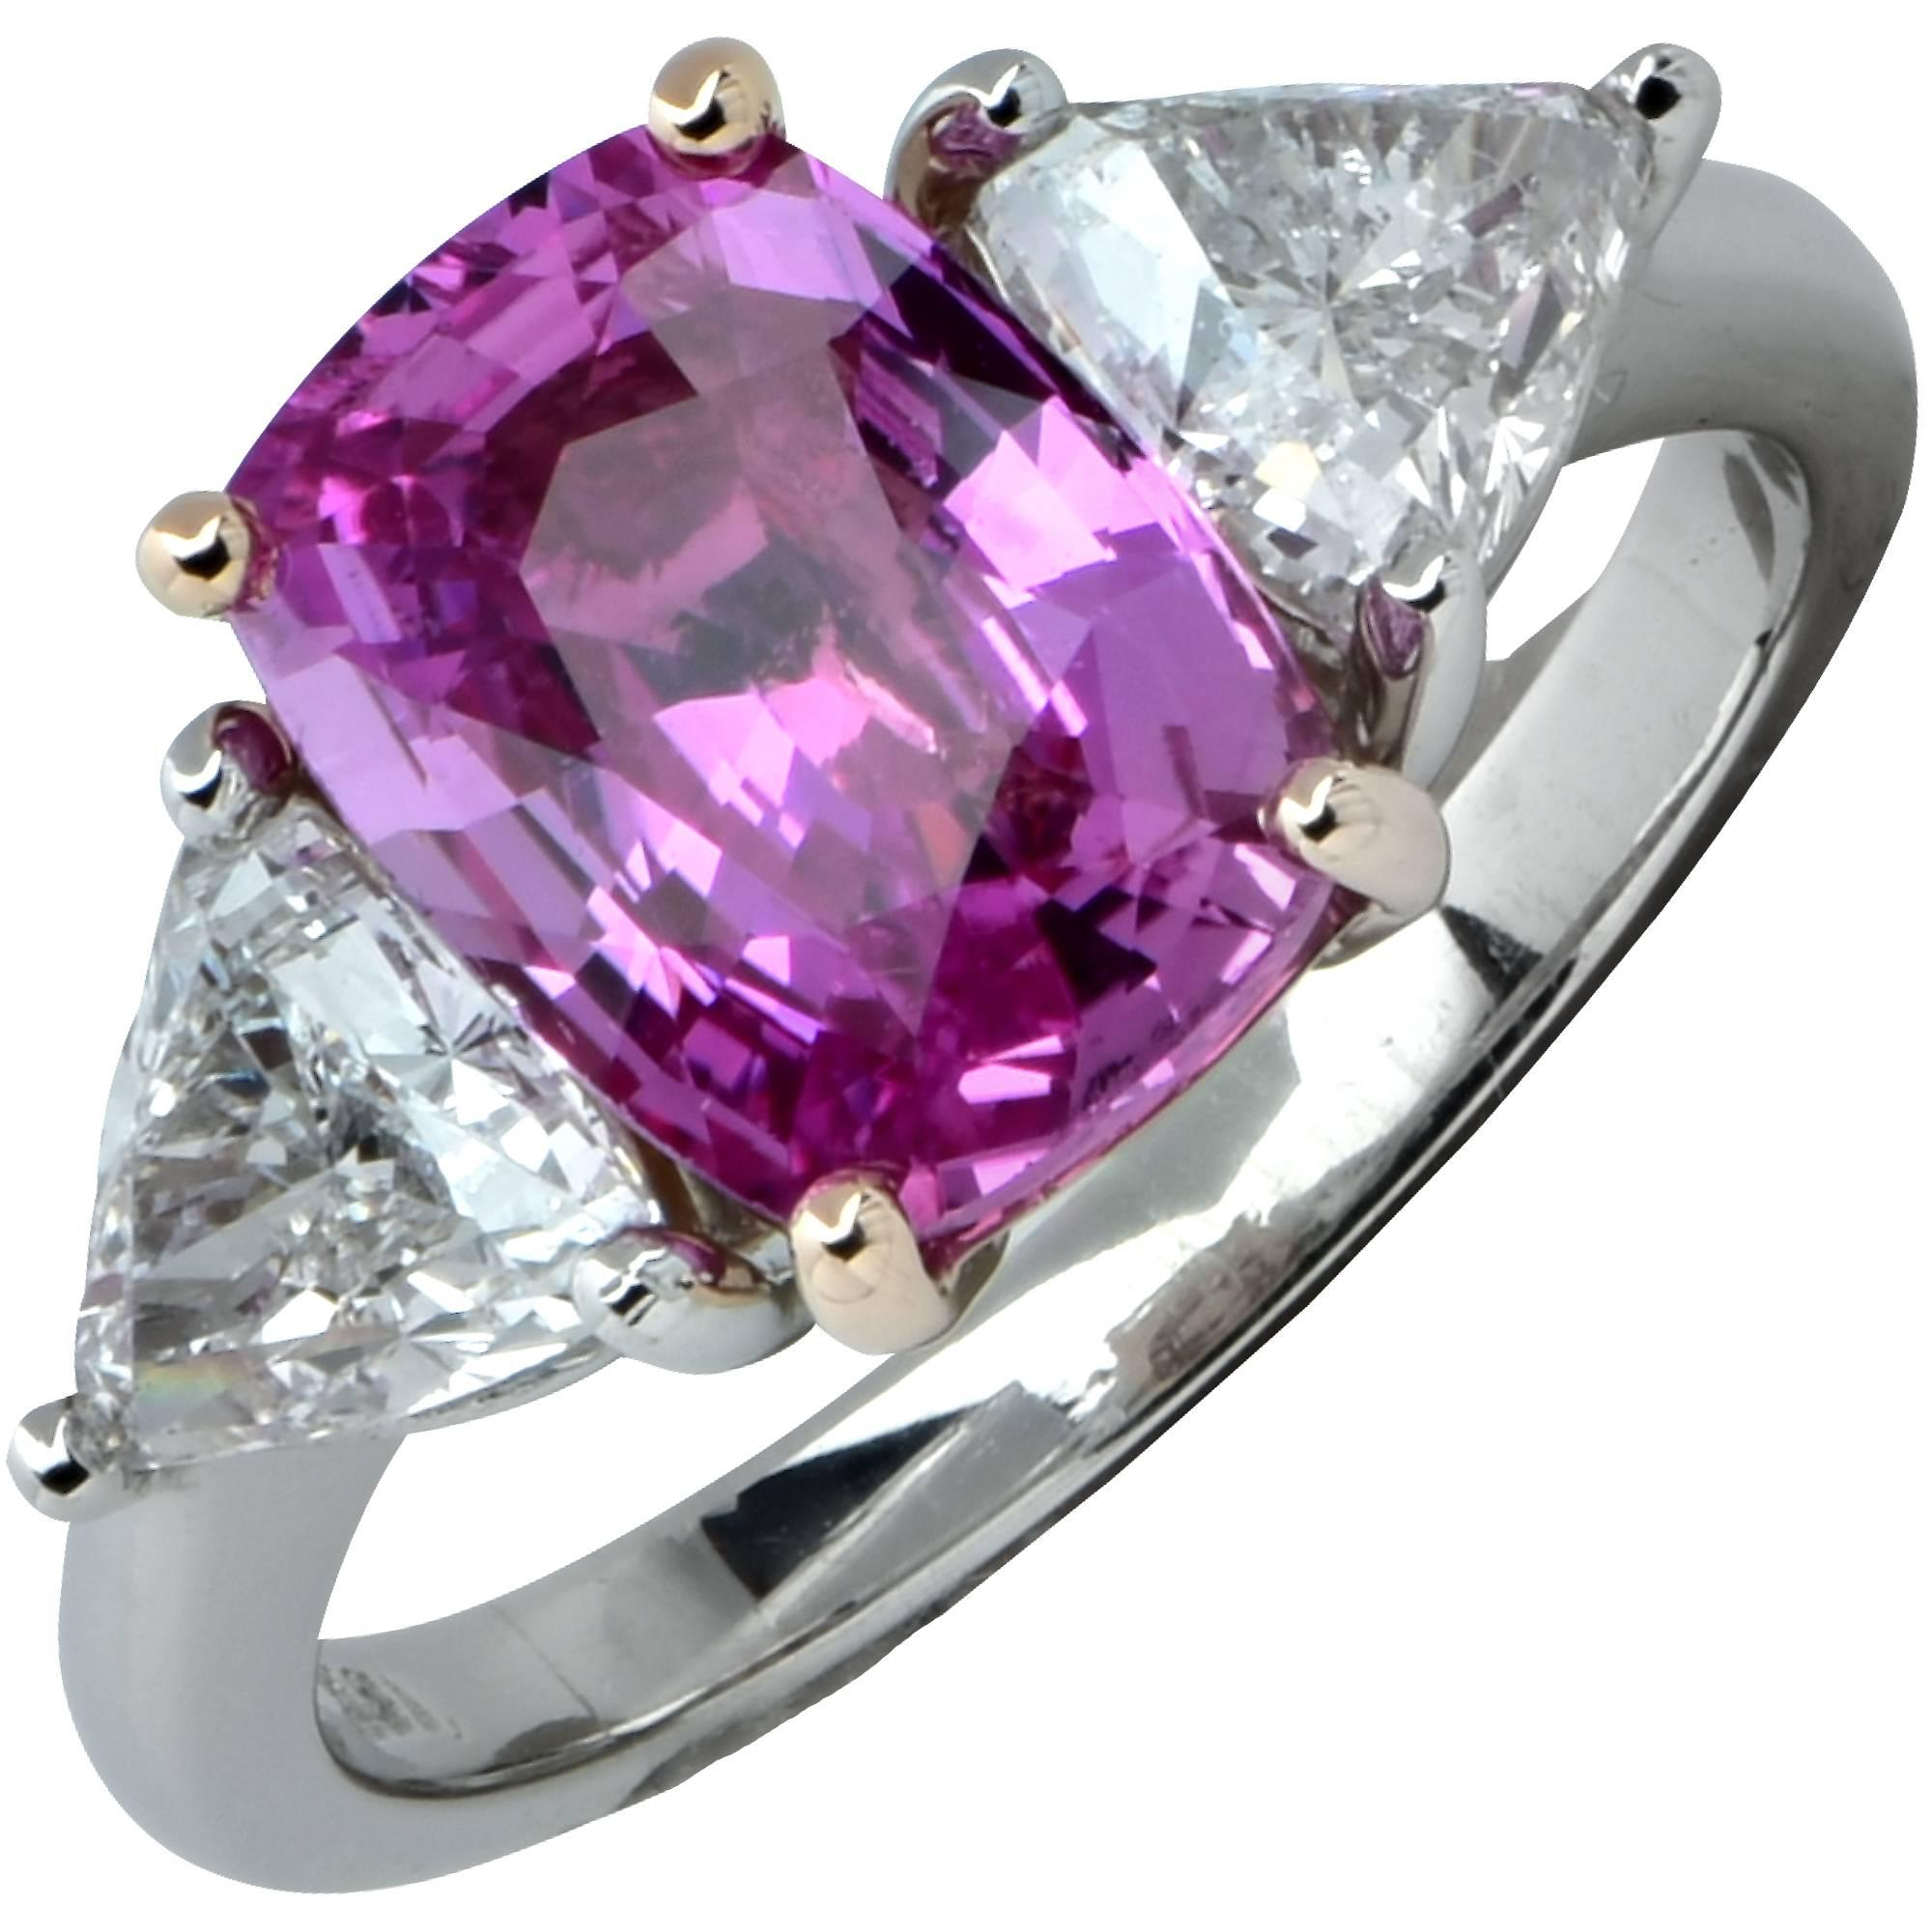 zirconia is hand what woman wearing an engagement information s cubic rings ring corundum